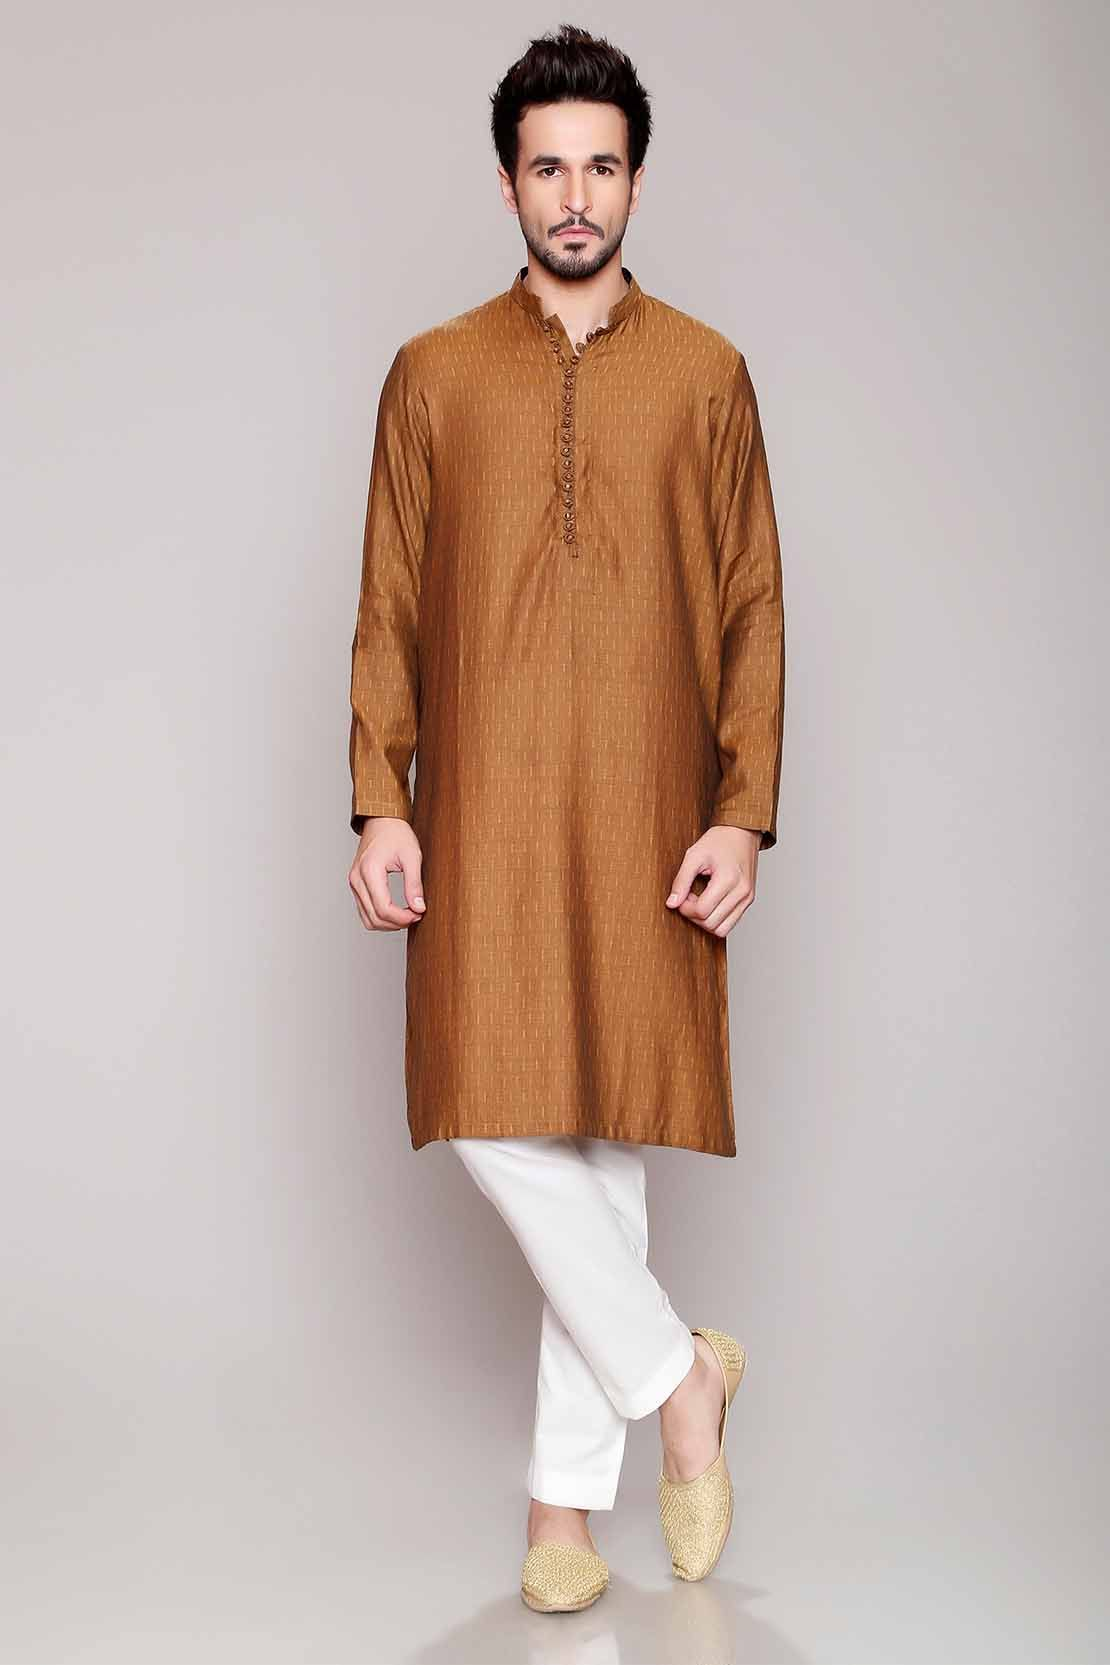 Mens chinyere kurta forecast dress for autumn in 2019